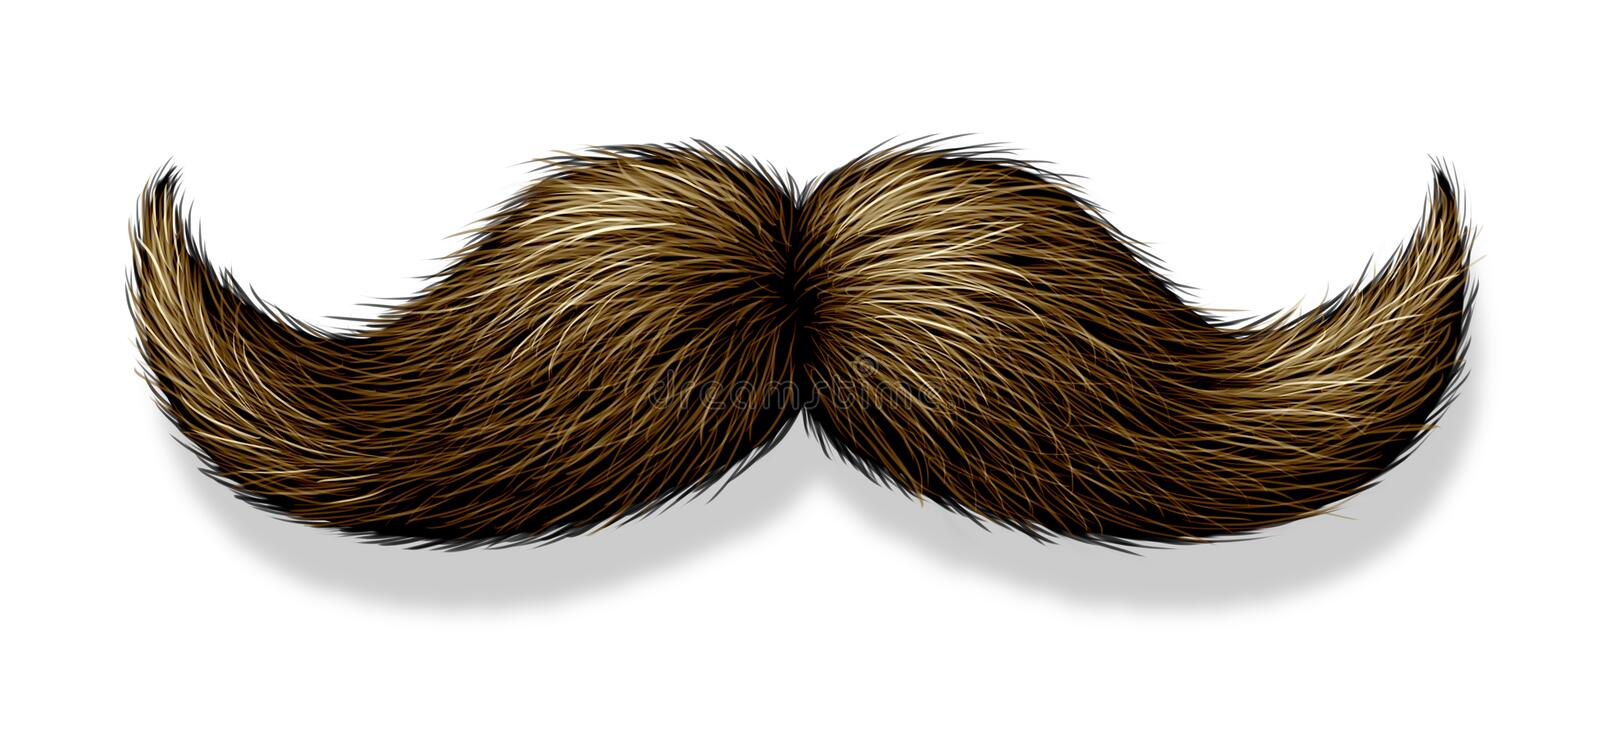 Moustache On White Background Royalty Free Stock Photography